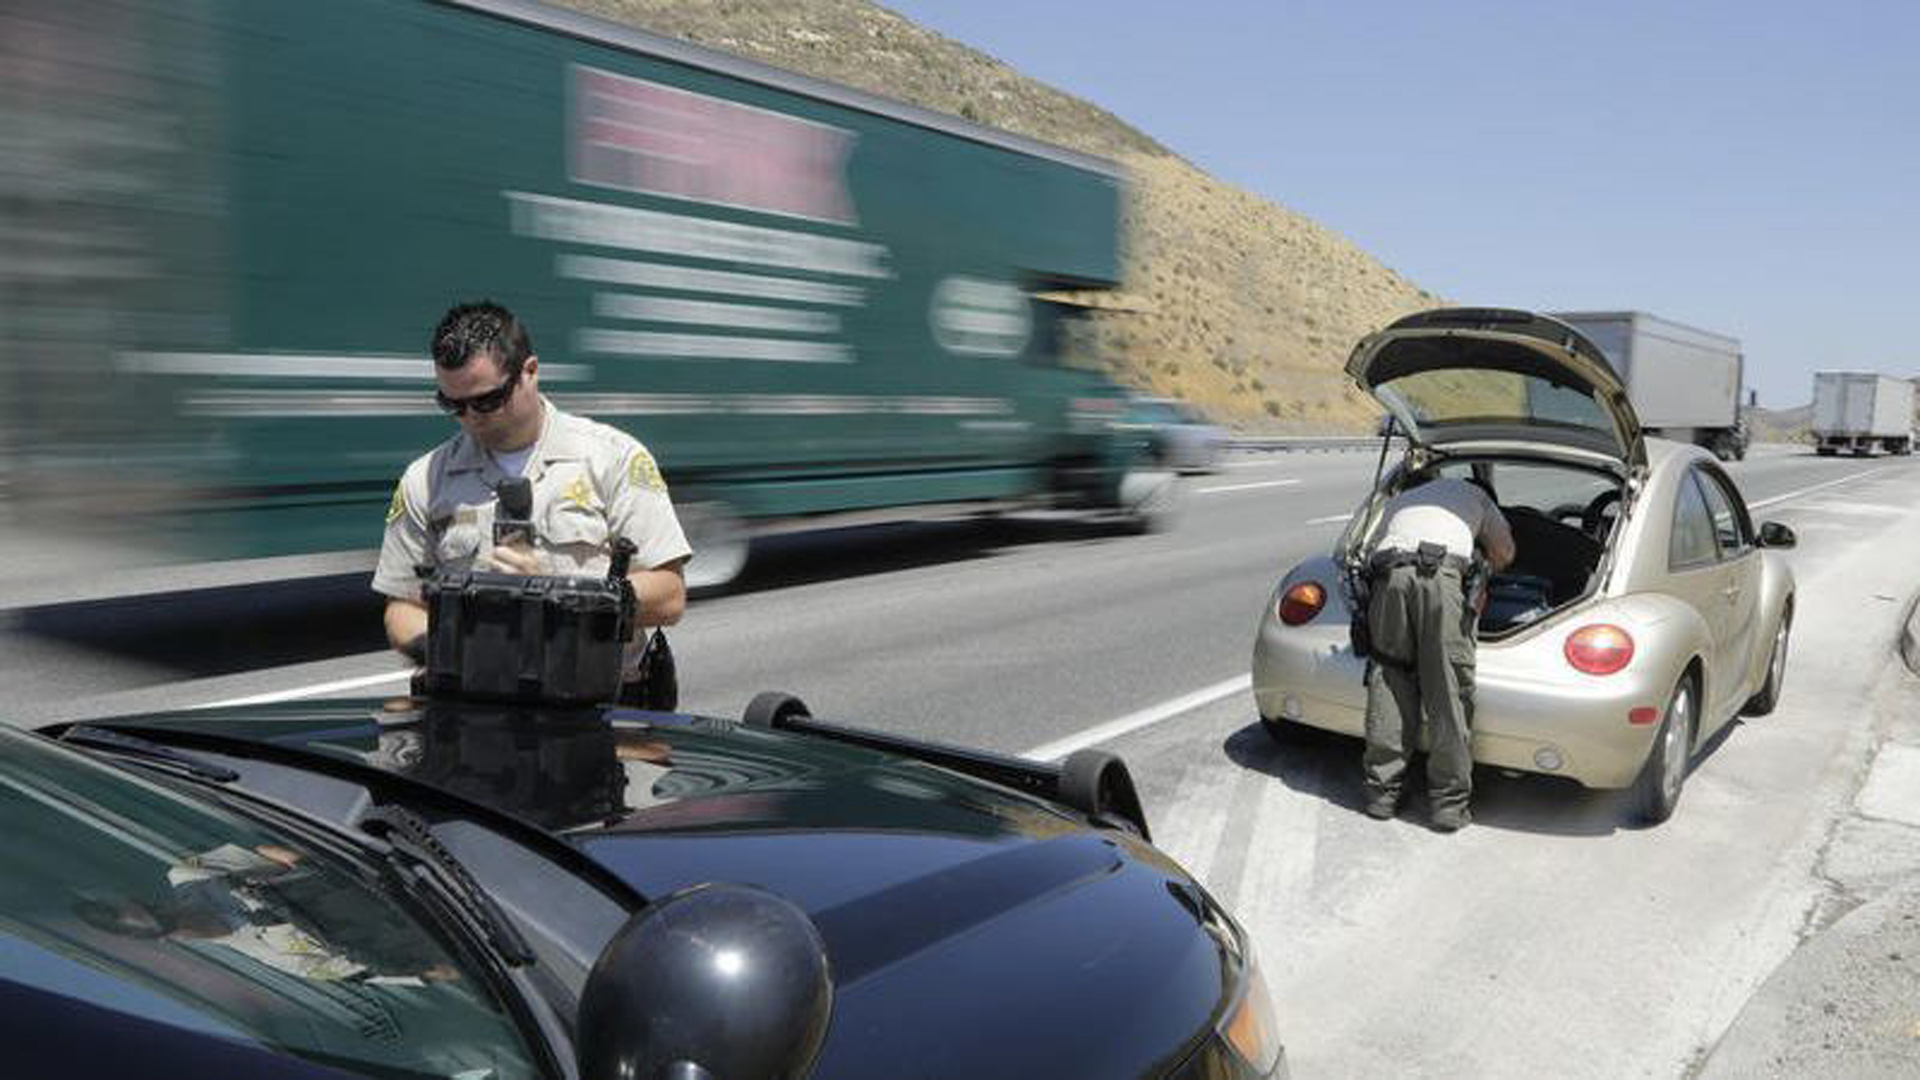 """The Sheriff's Department's Domestic Highway Enforcement team's operations were suspended in November after the county's inspector general said it was """"inherently built to violate the constitutional rights of a vast number of people passing through the I-5 Freeway."""" (Credit: Myung J. Chun / Los Angeles Times)"""